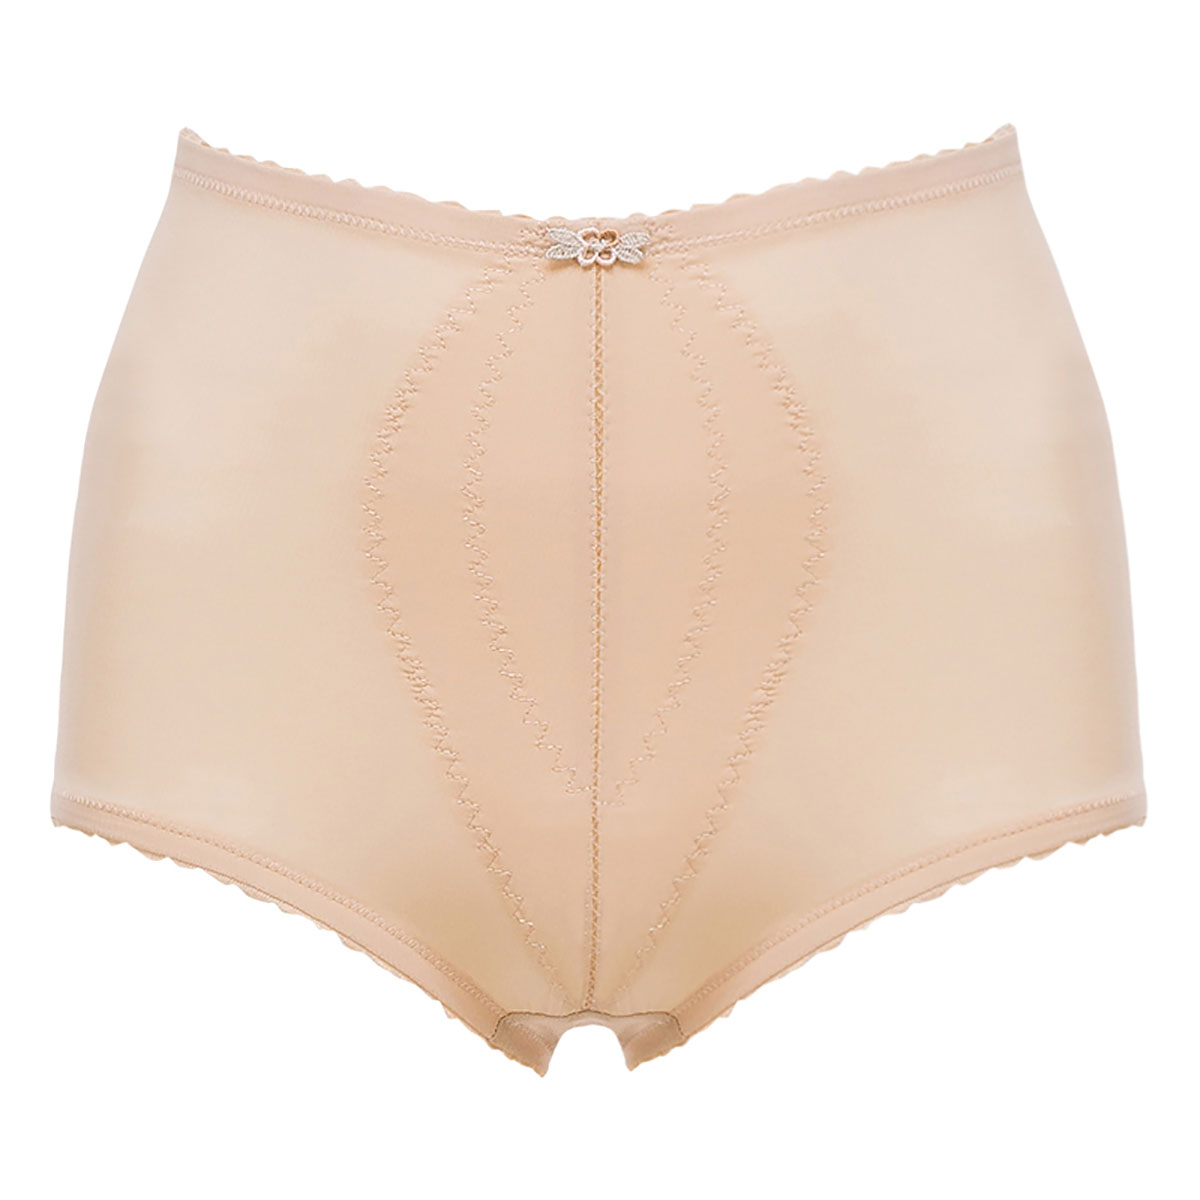 Shaping Brief in Skin tone– I Can't Believe It's A Girdle, , PLAYTEX